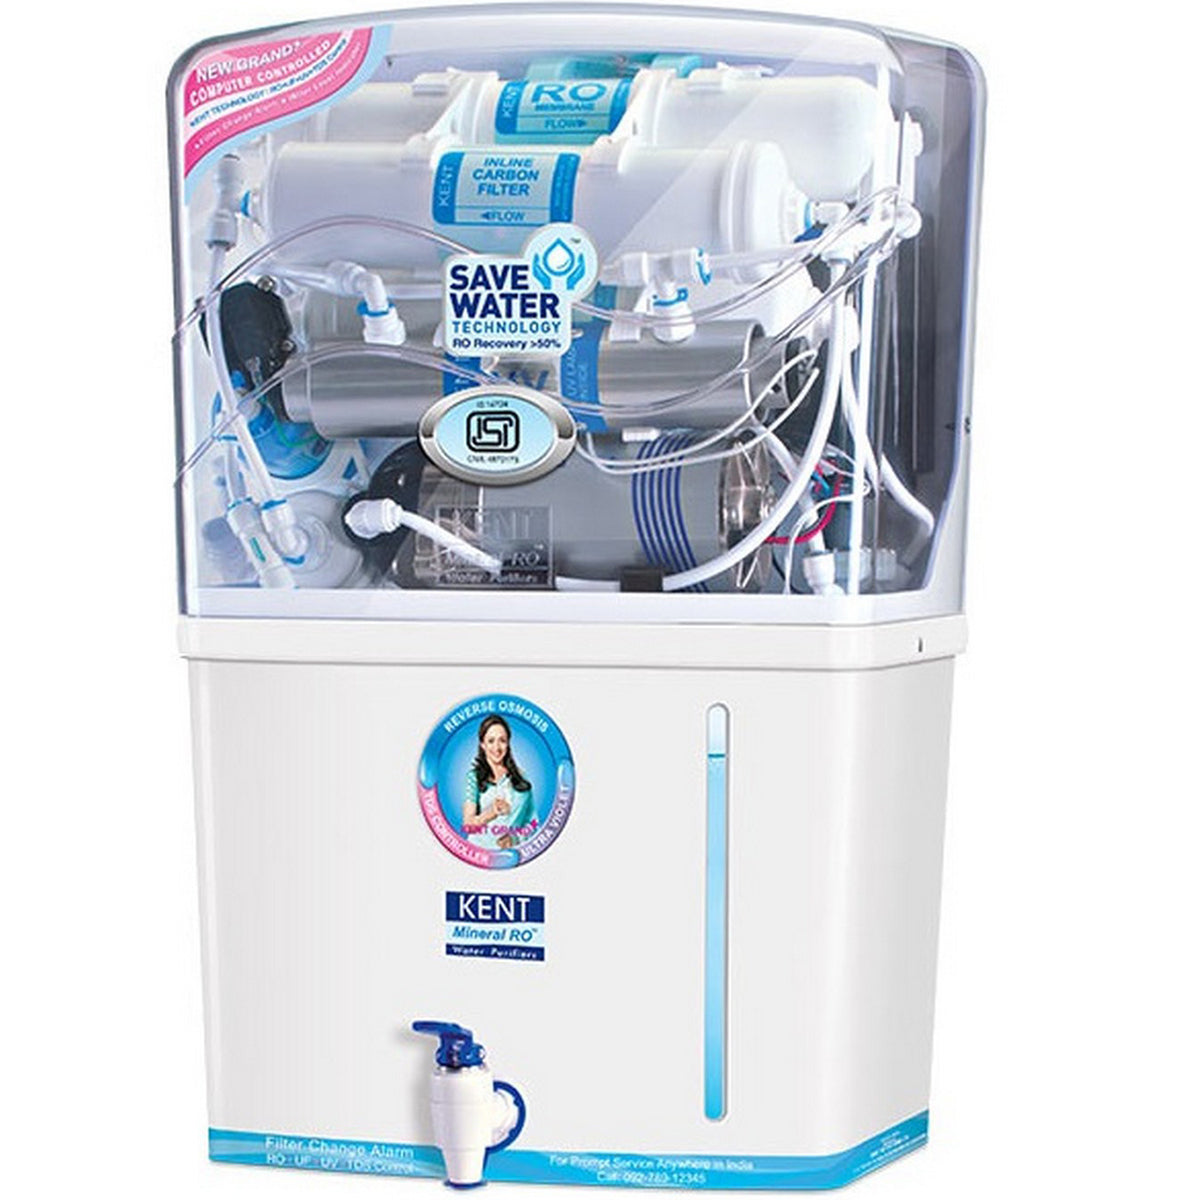 Kent Grand + Mineral RO + UV + UF Water Purifier with TDS Controller